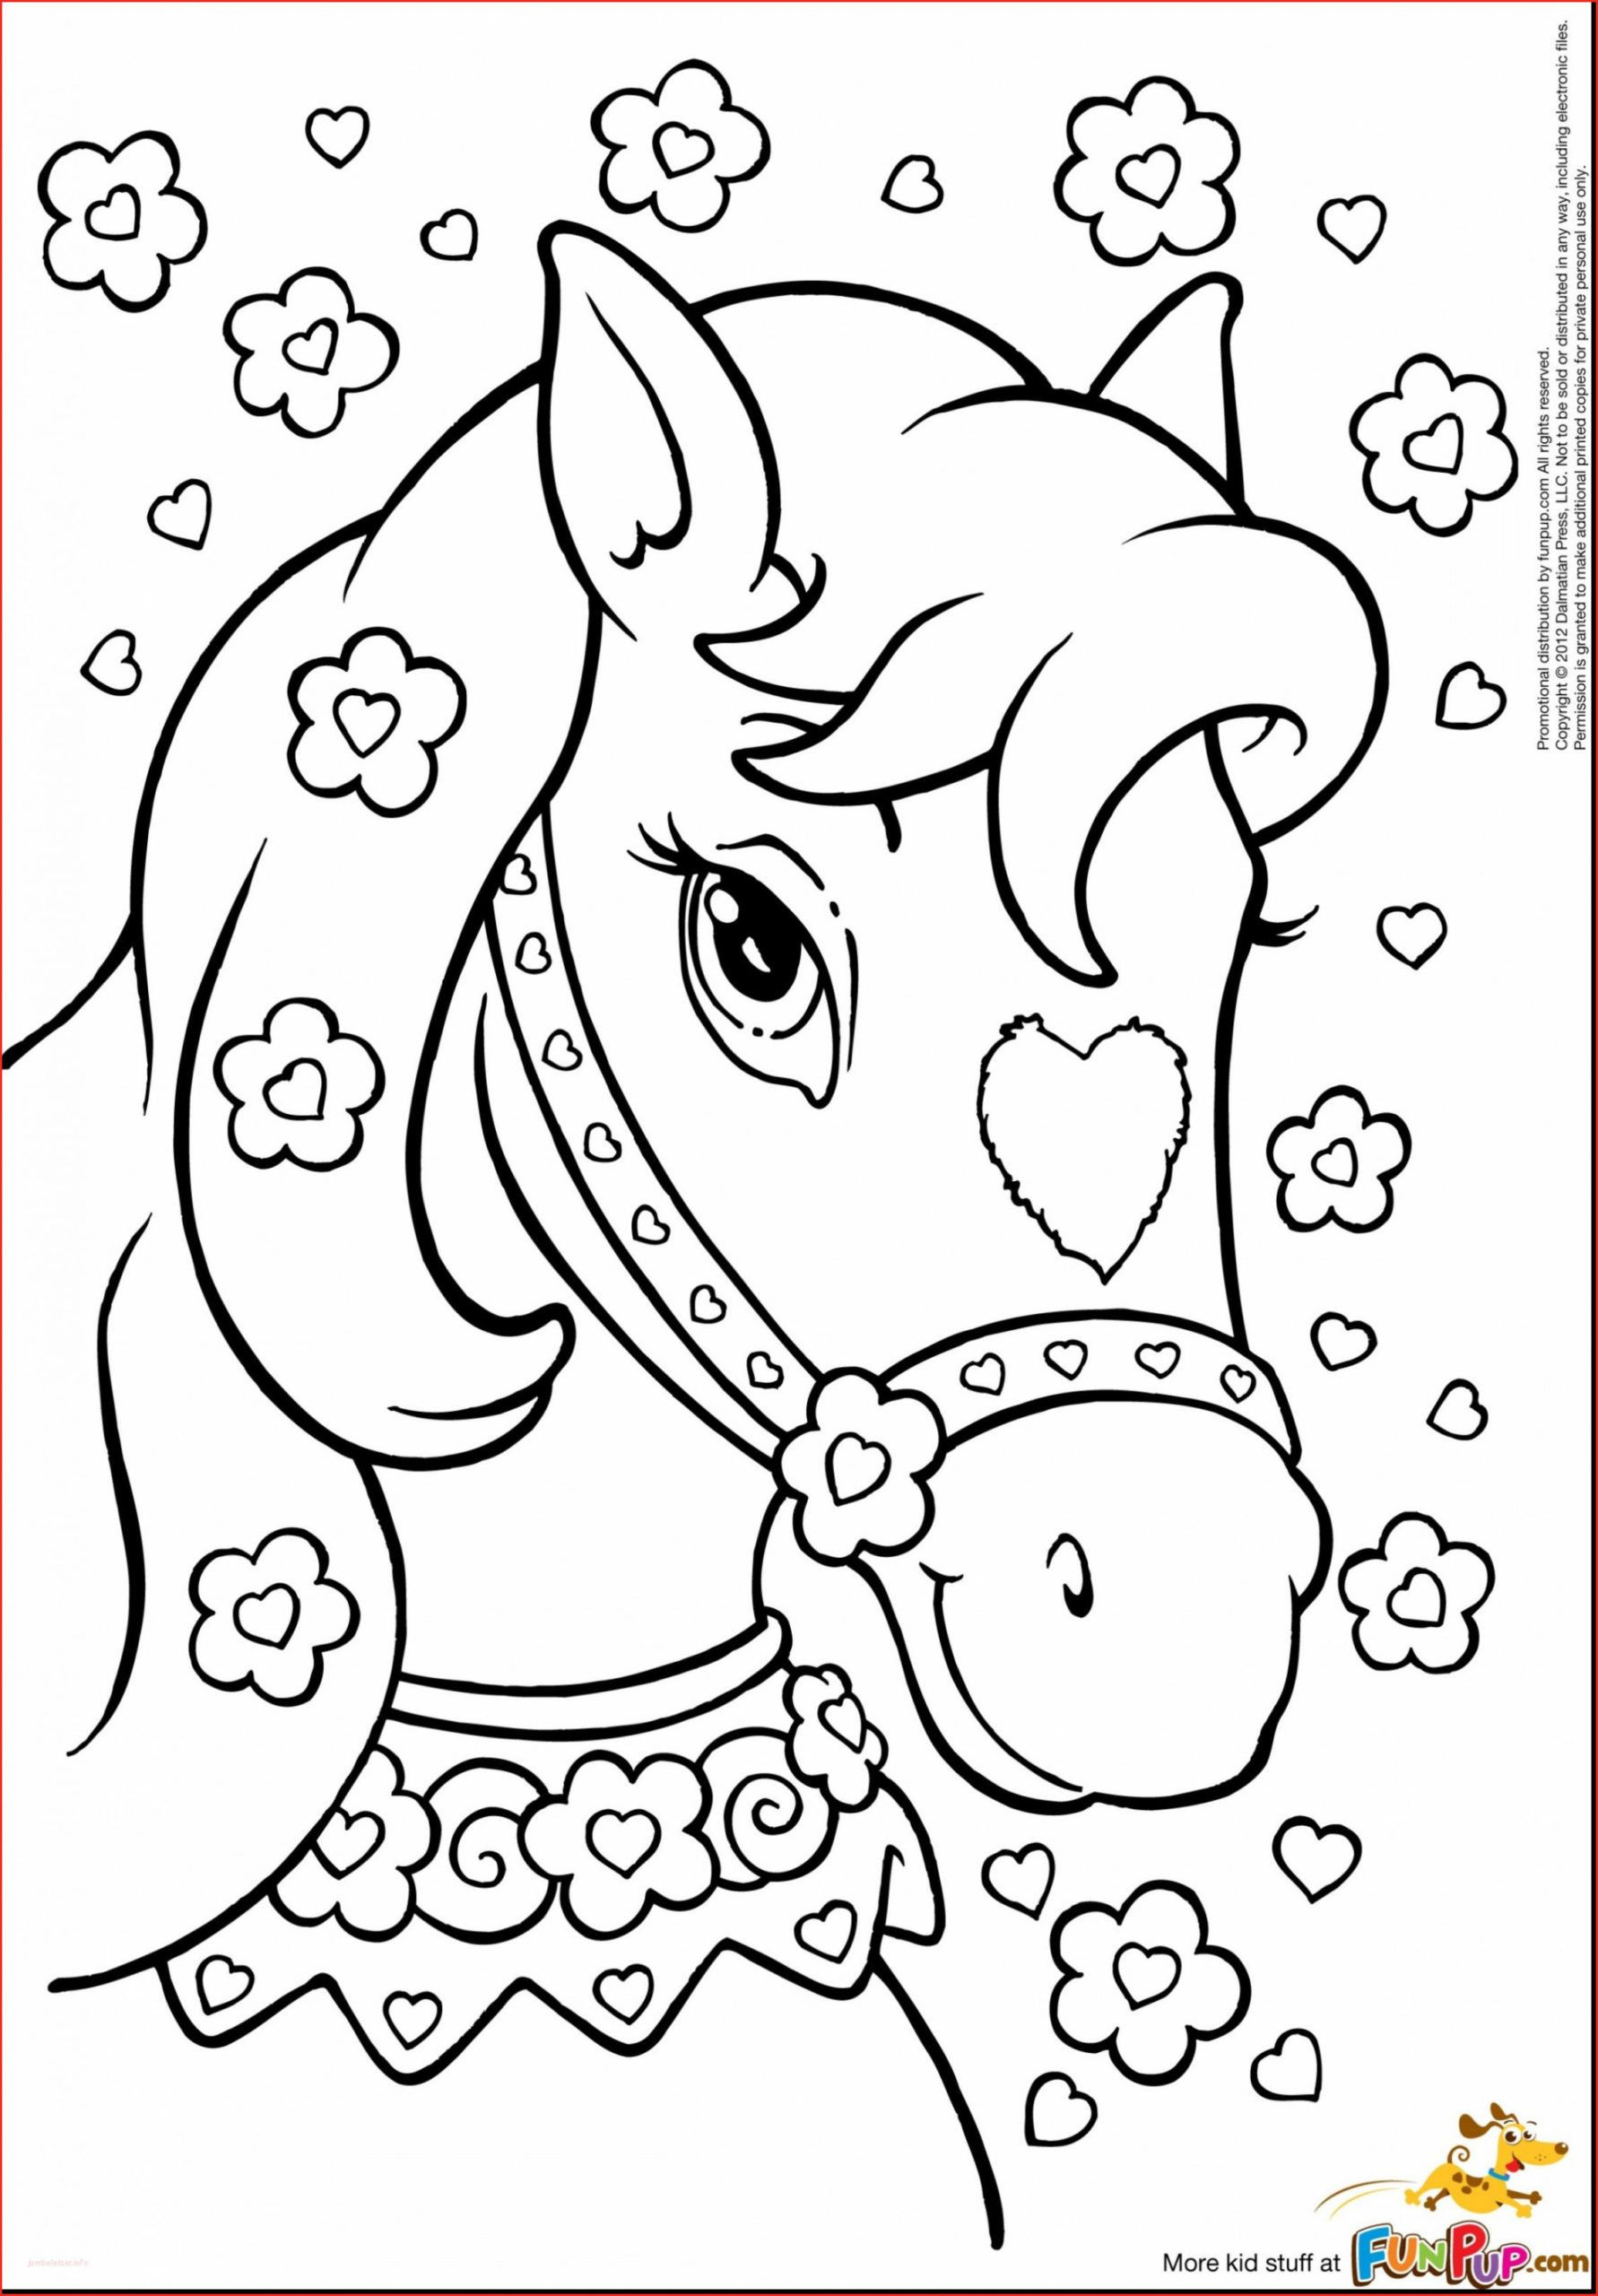 Cute Horse Coloring Page - youngandtae.com  Unicorn coloring